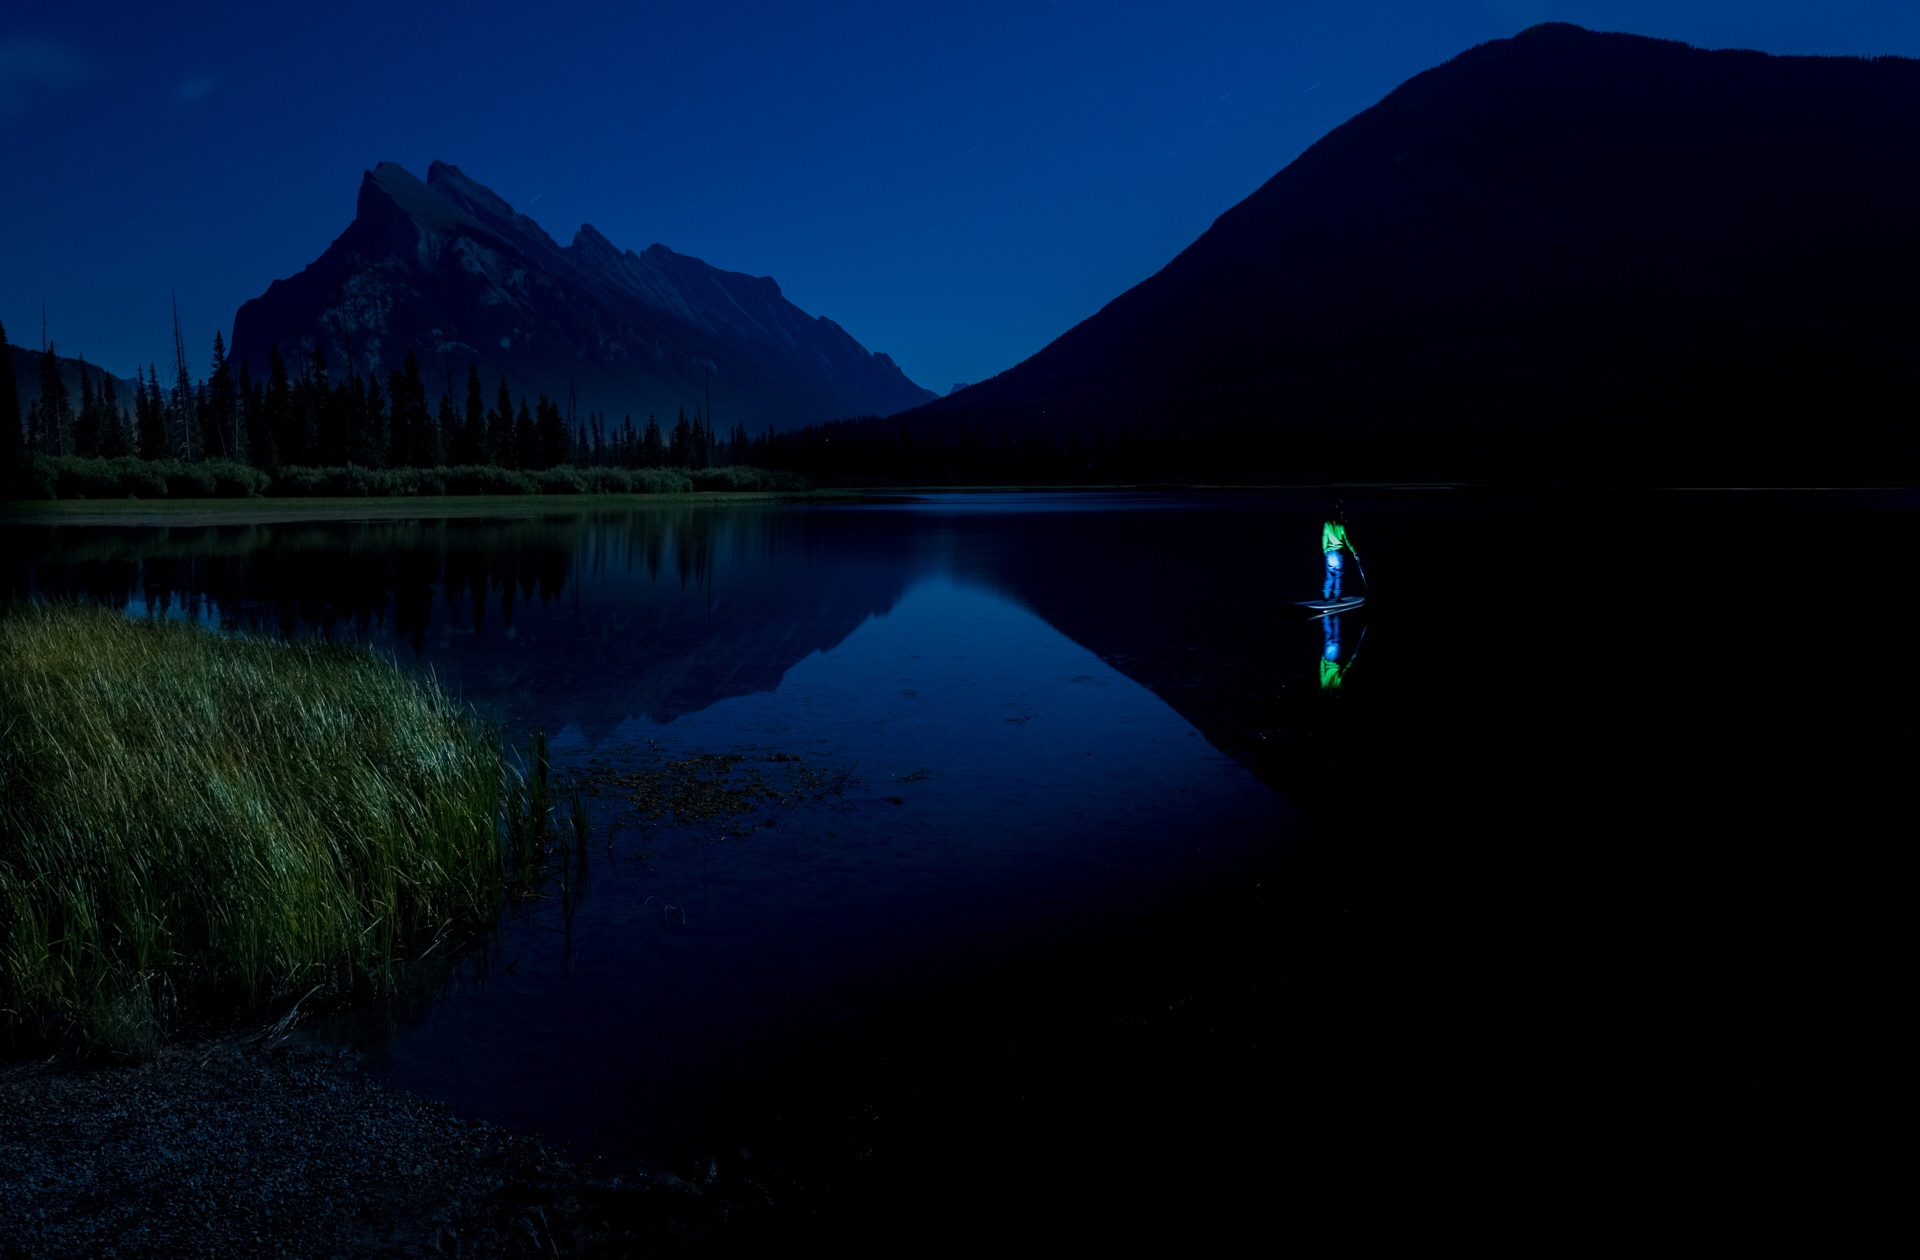 Night shot long exposure Banff National Park Canada – Vermilion lakes - gregg jaden visuals